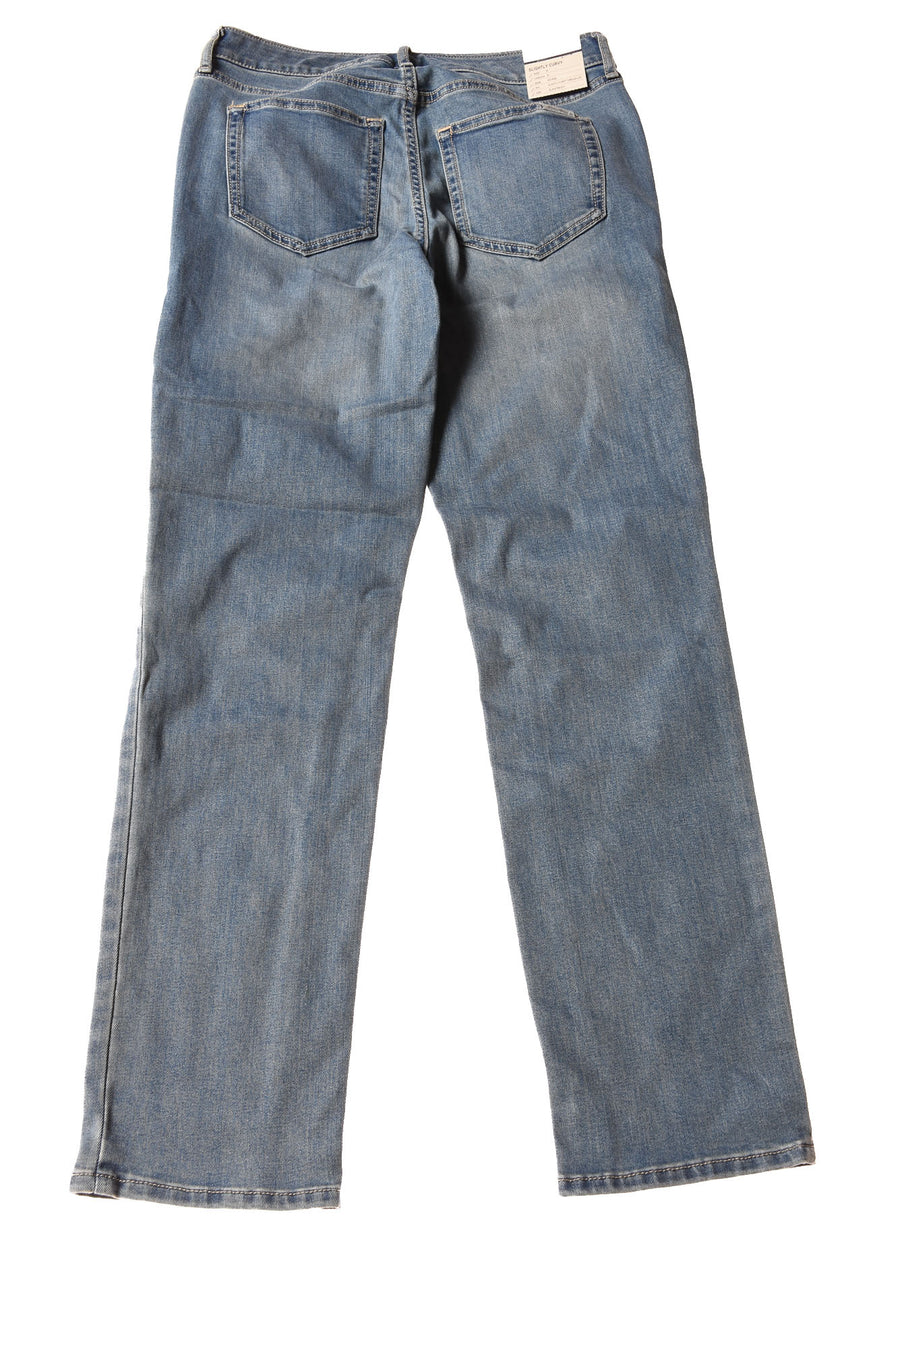 NEW Eddie Bauer Women's Jeans 6 Blue